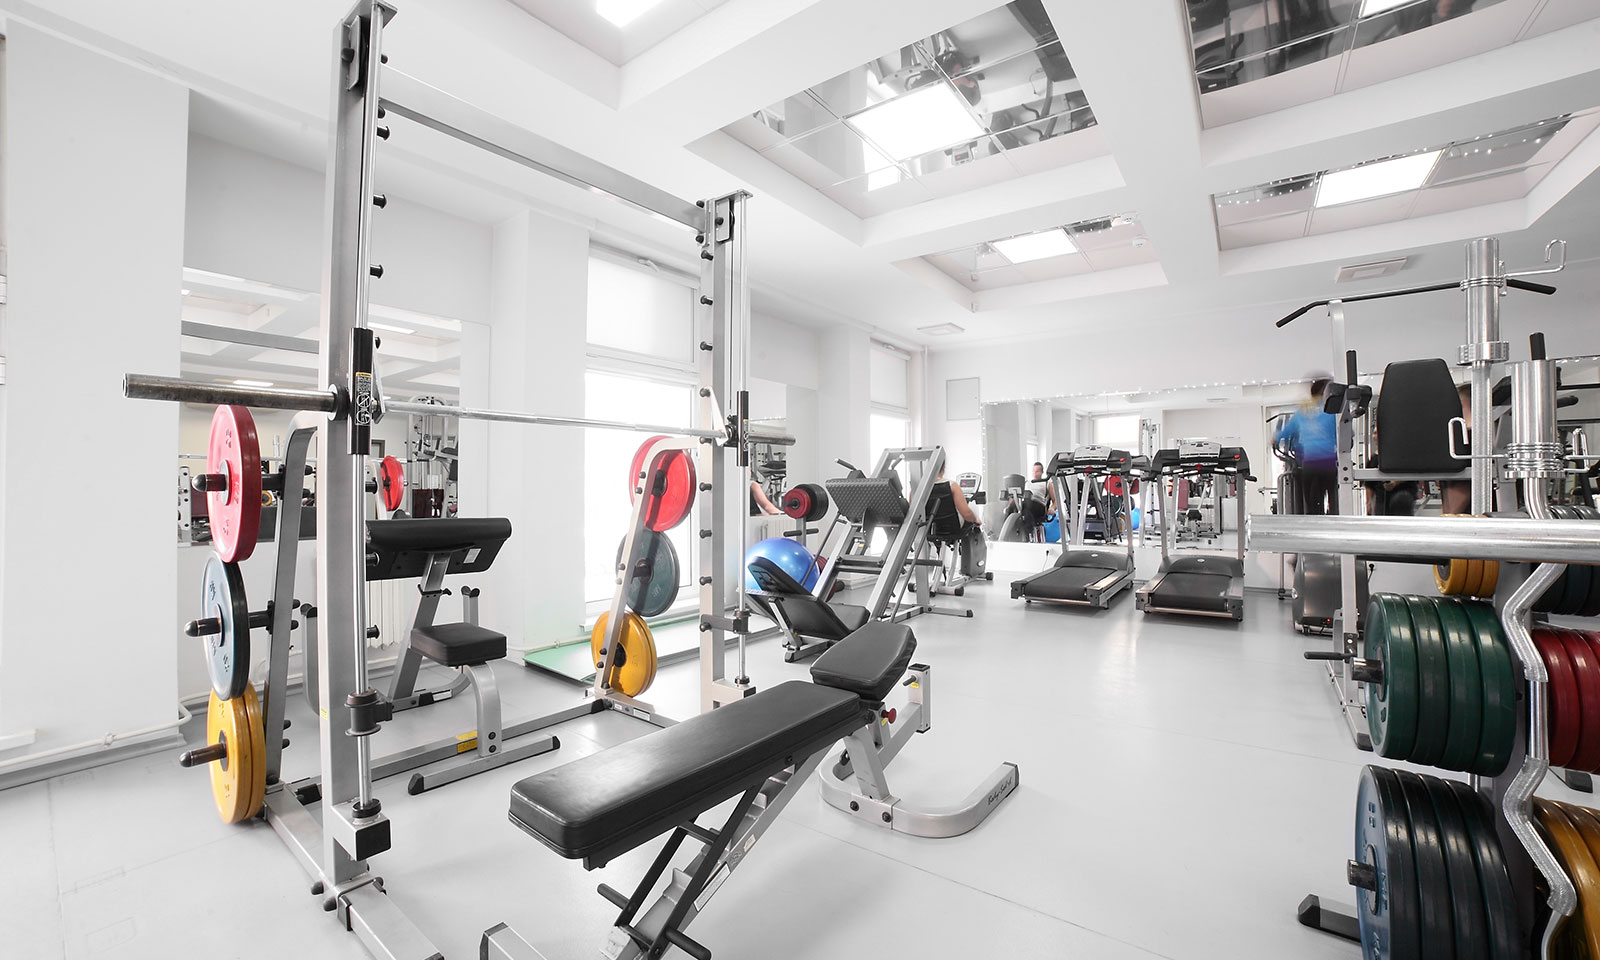 Choosing A New Gym? Five Things To Look For